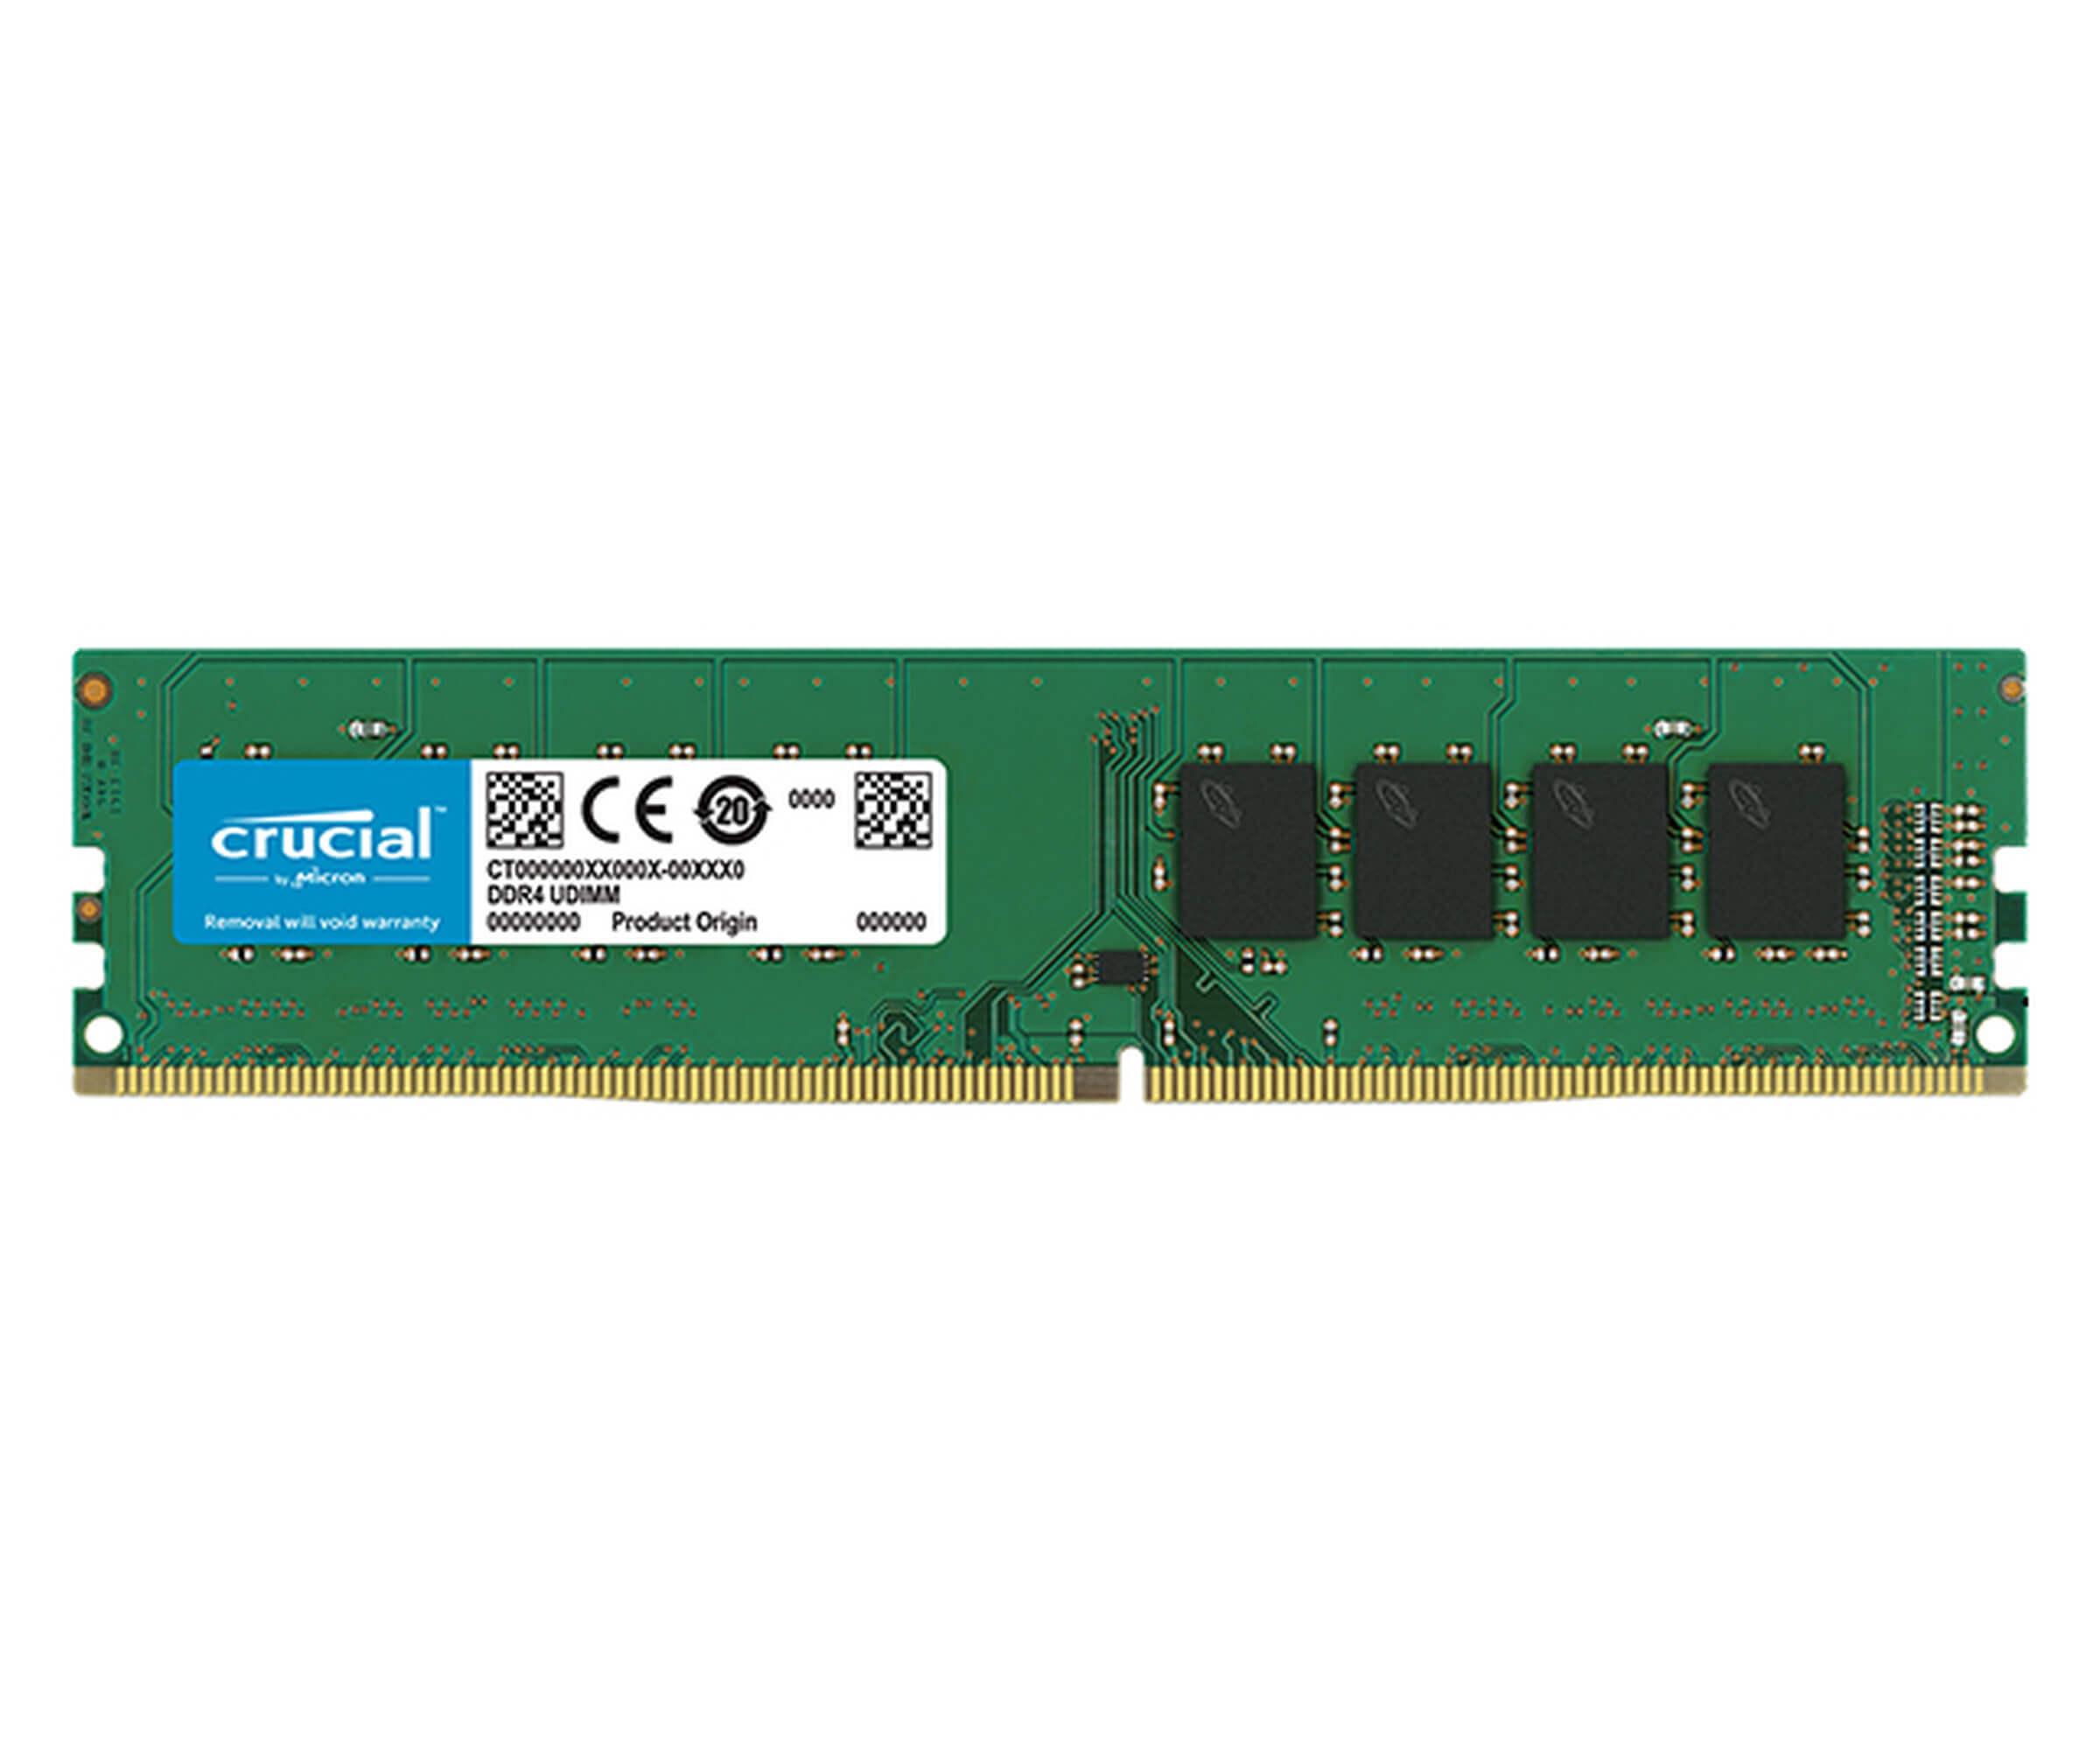 PAMIĘĆ RAM CRUCIAL DDR4 4GB 2400 MHz CL17 DO PC OUTLET